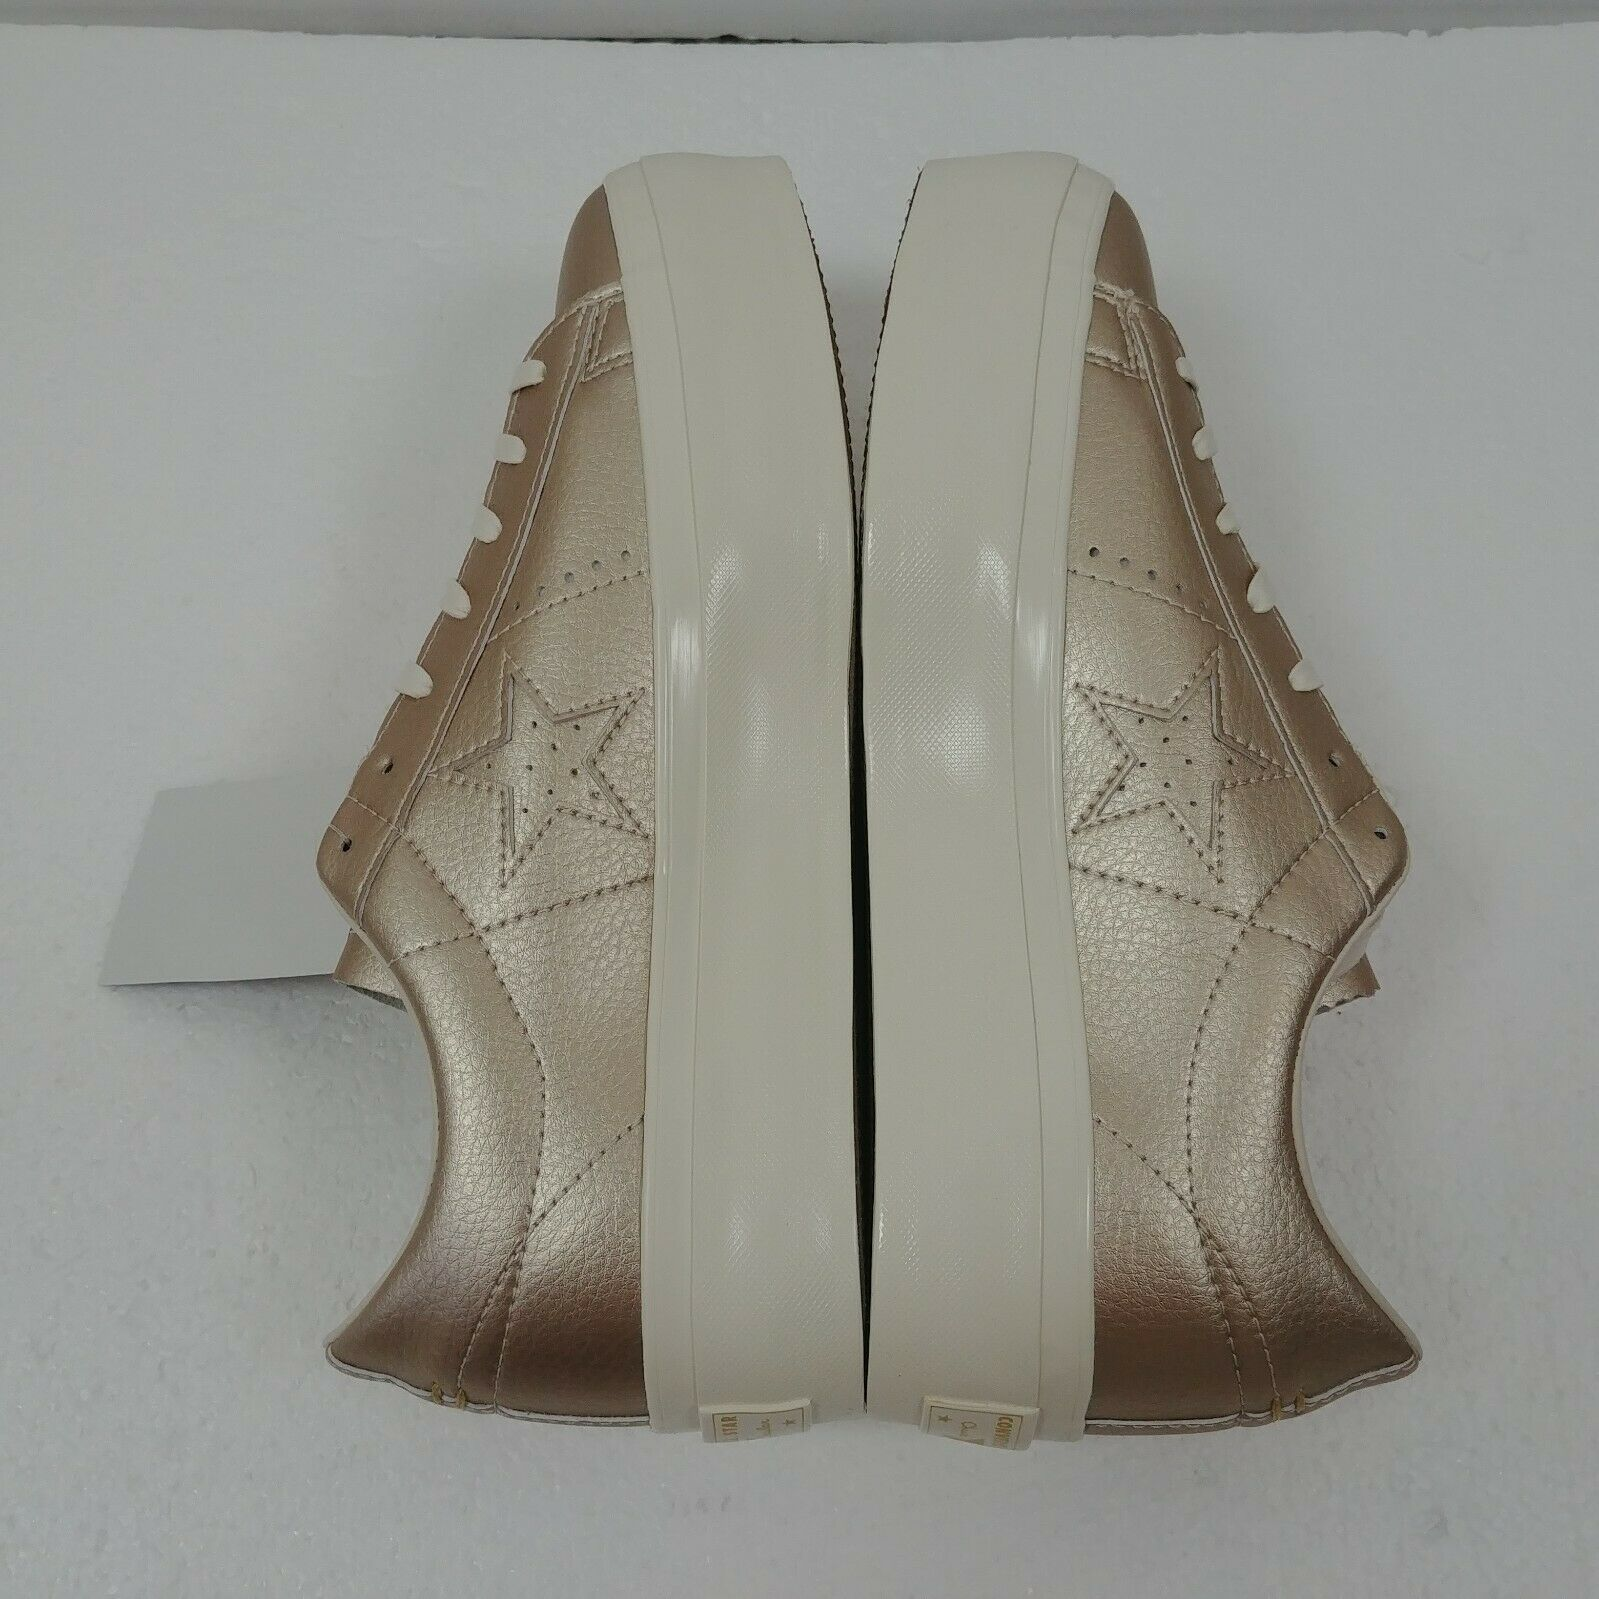 Converse One Star Platform Ox Low Top Shoes Gold 559924C Womens Size 10 NWT image 4